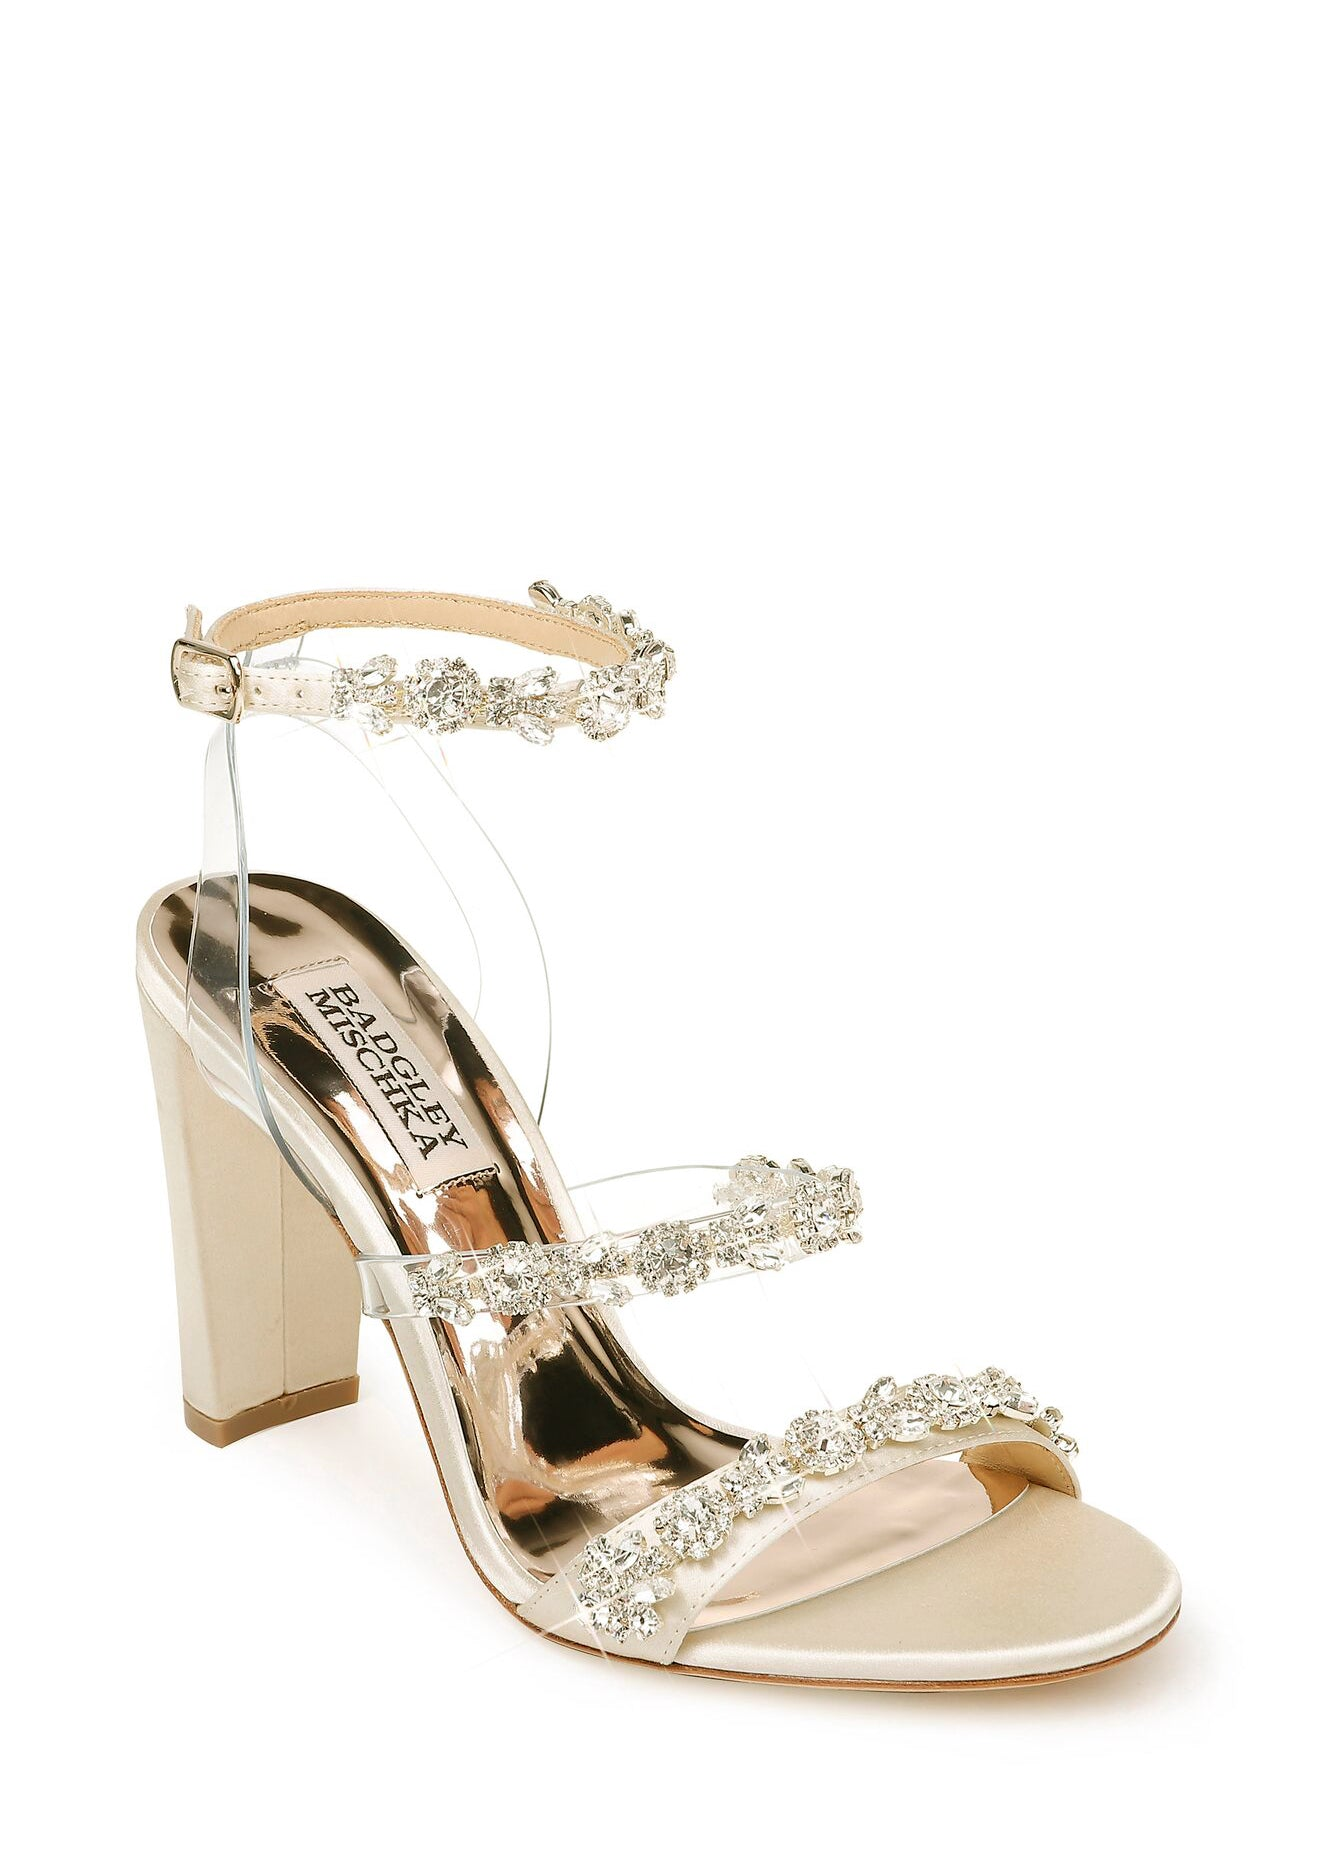 Adel - Coming Soon, Shoes, Badgley Mischka - Eternal Bridal